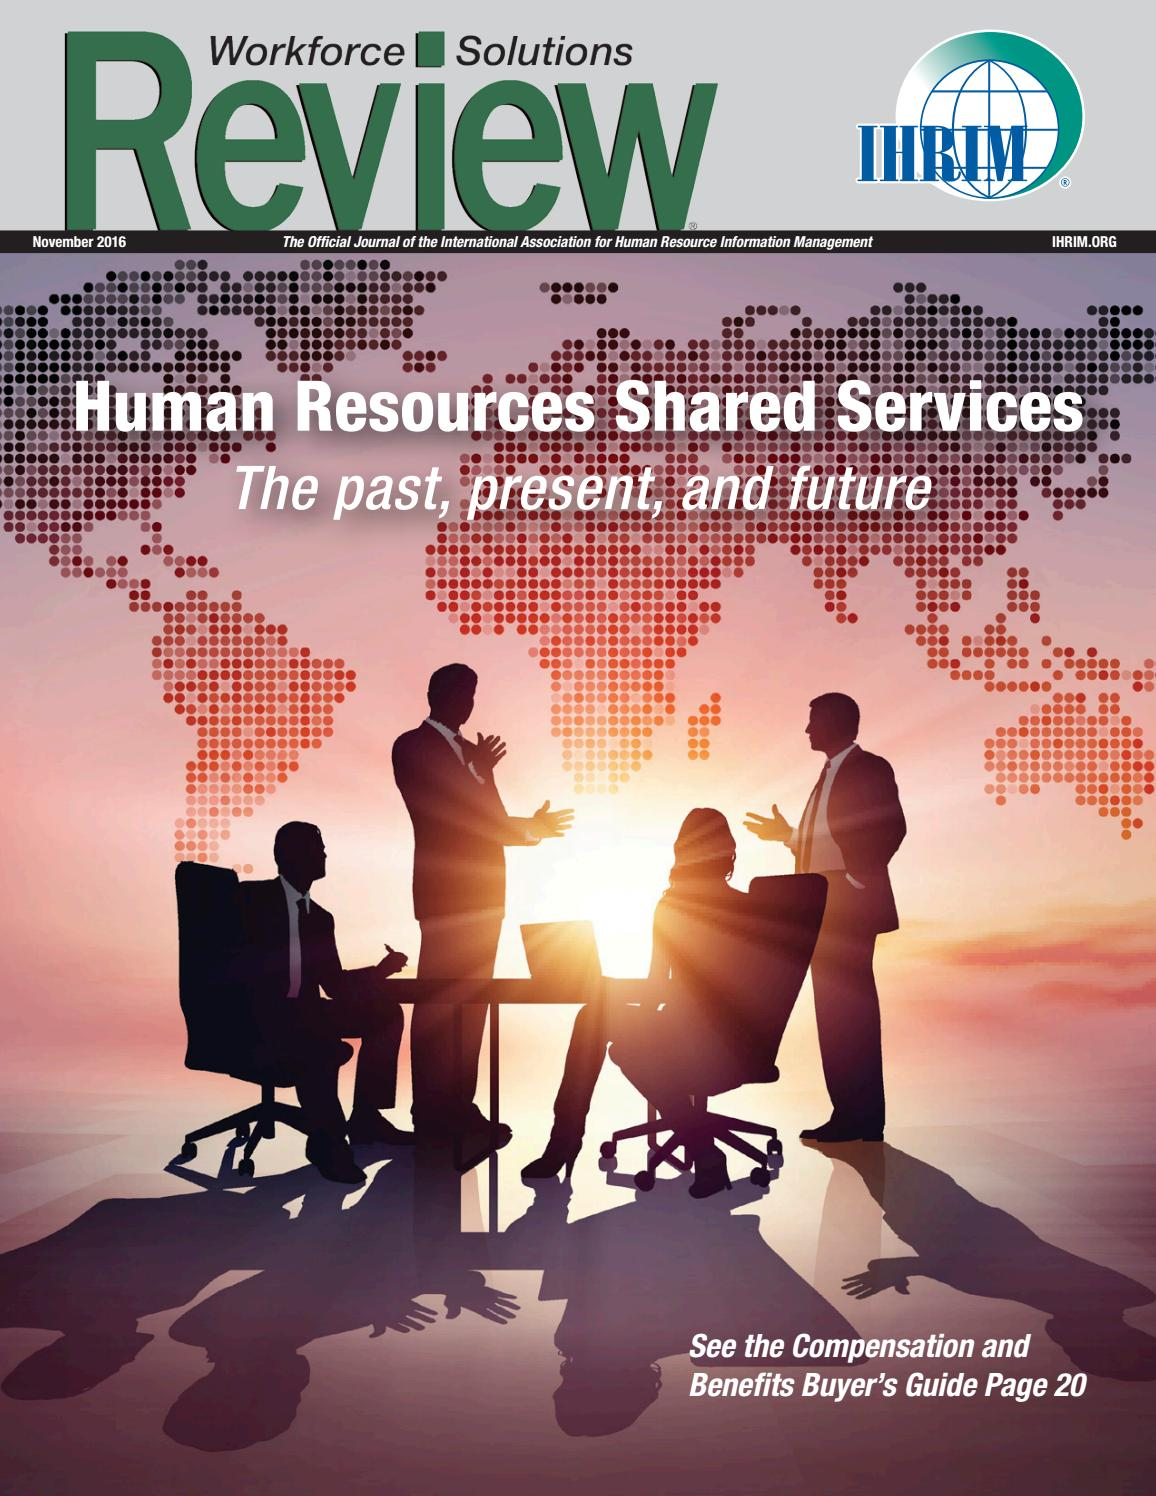 Shared services evangelists 2 0 - Shared Services Evangelists 2 0 4